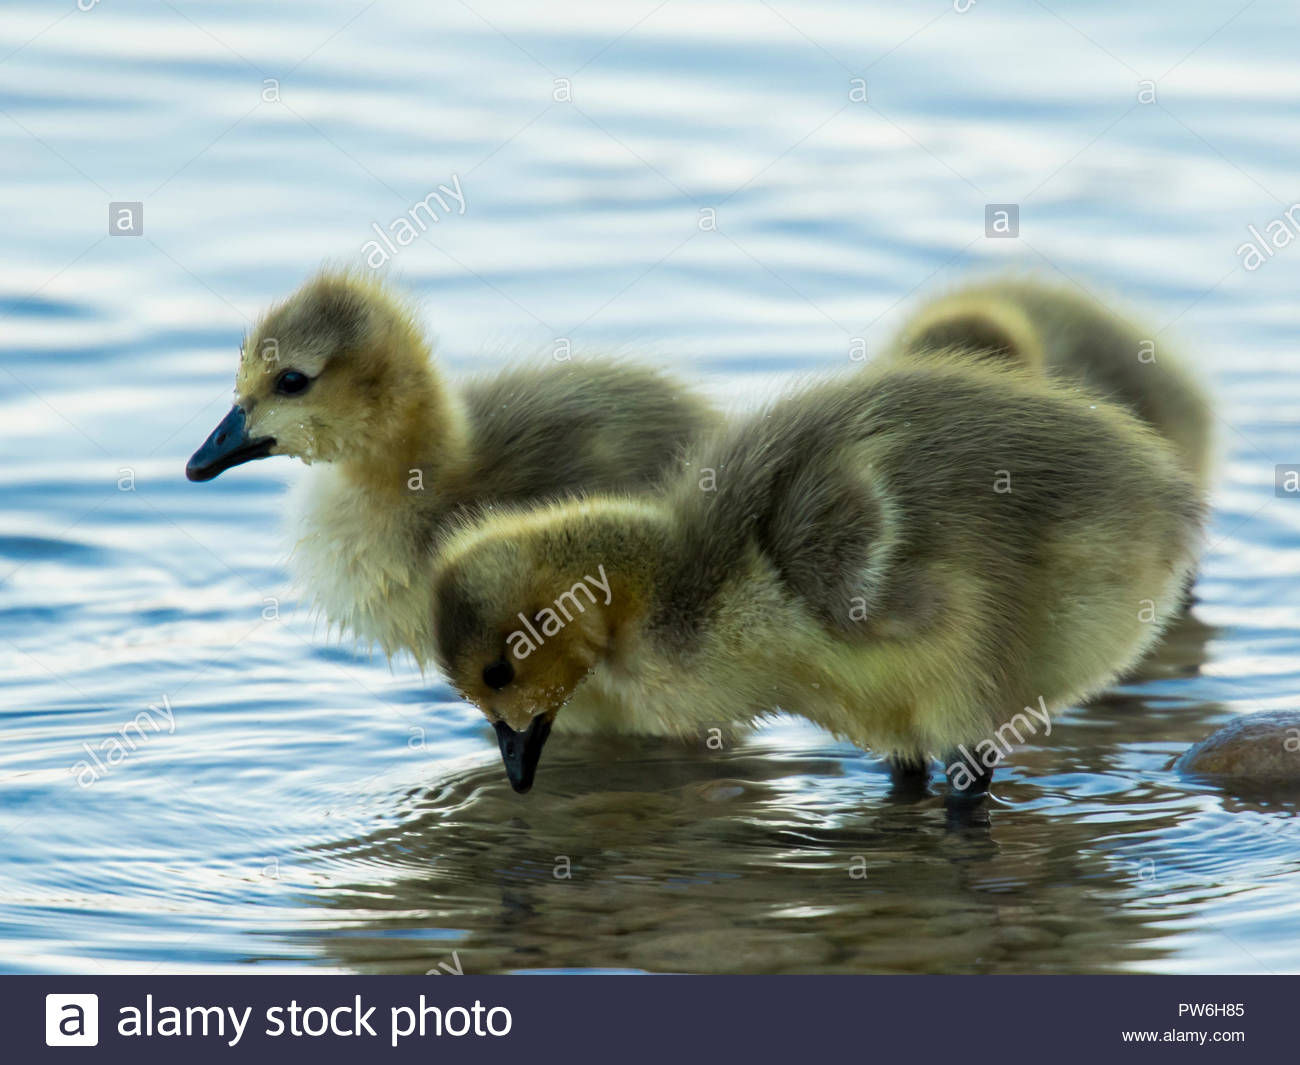 These cute fuzzy goslings were tentatively exploring a local lake in Scottsdale, Arizona - Stock Image